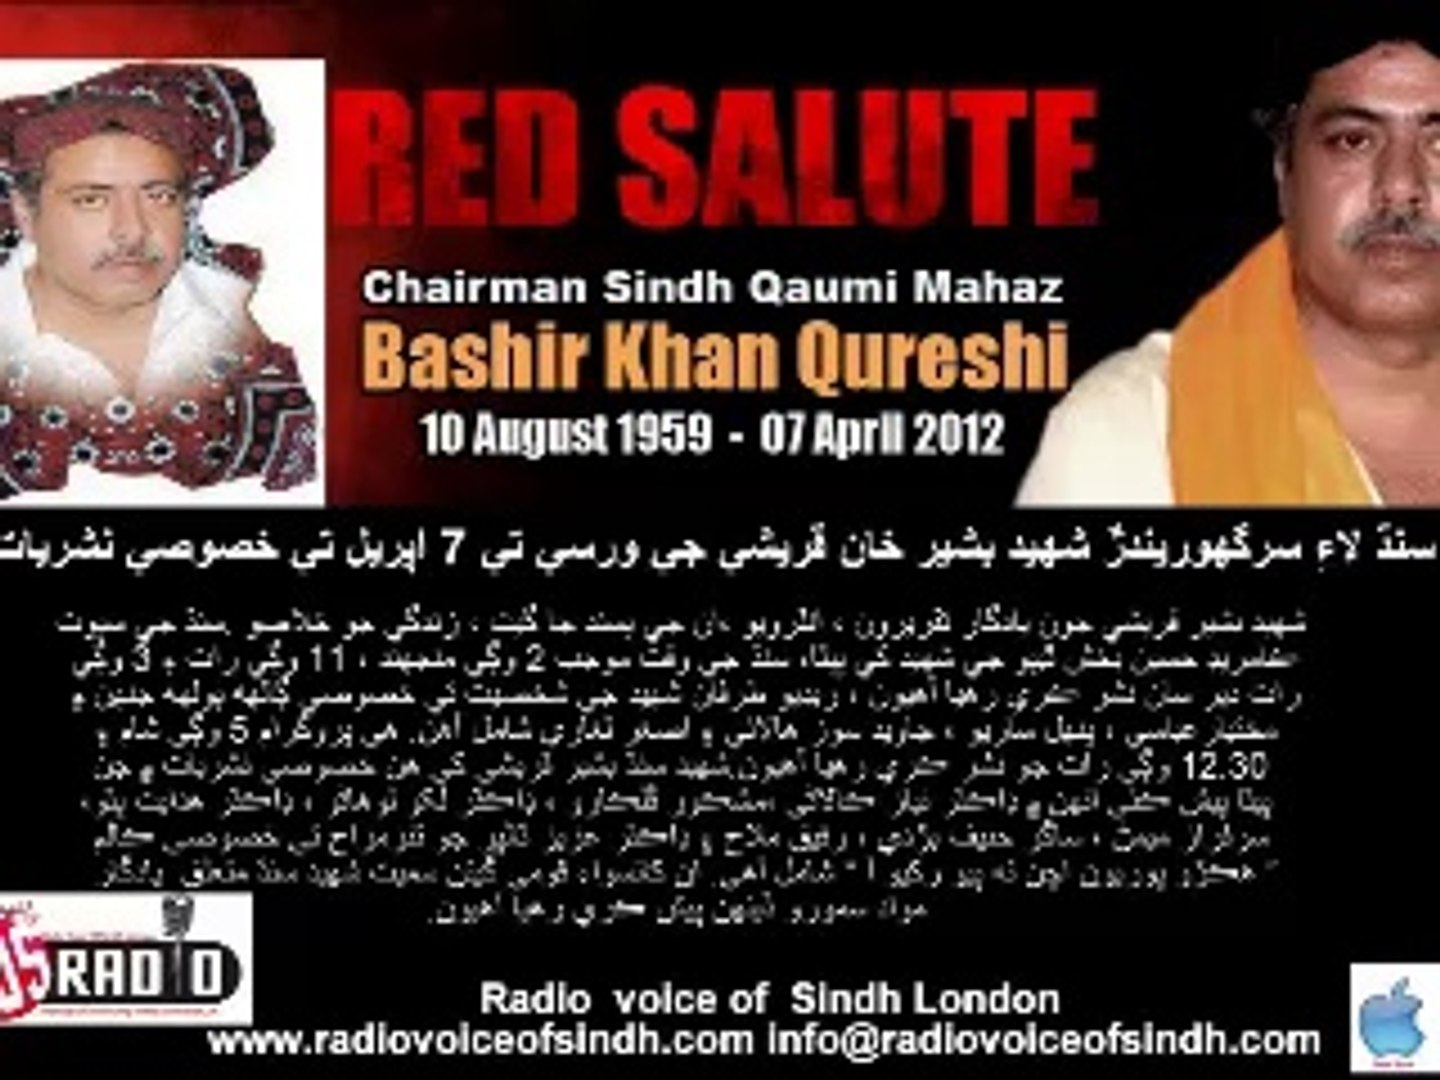 Comments on Bashir Khan Qureshi inSpecial Transmission of Anniversary By  Radio Voice of Sindh London Part 2